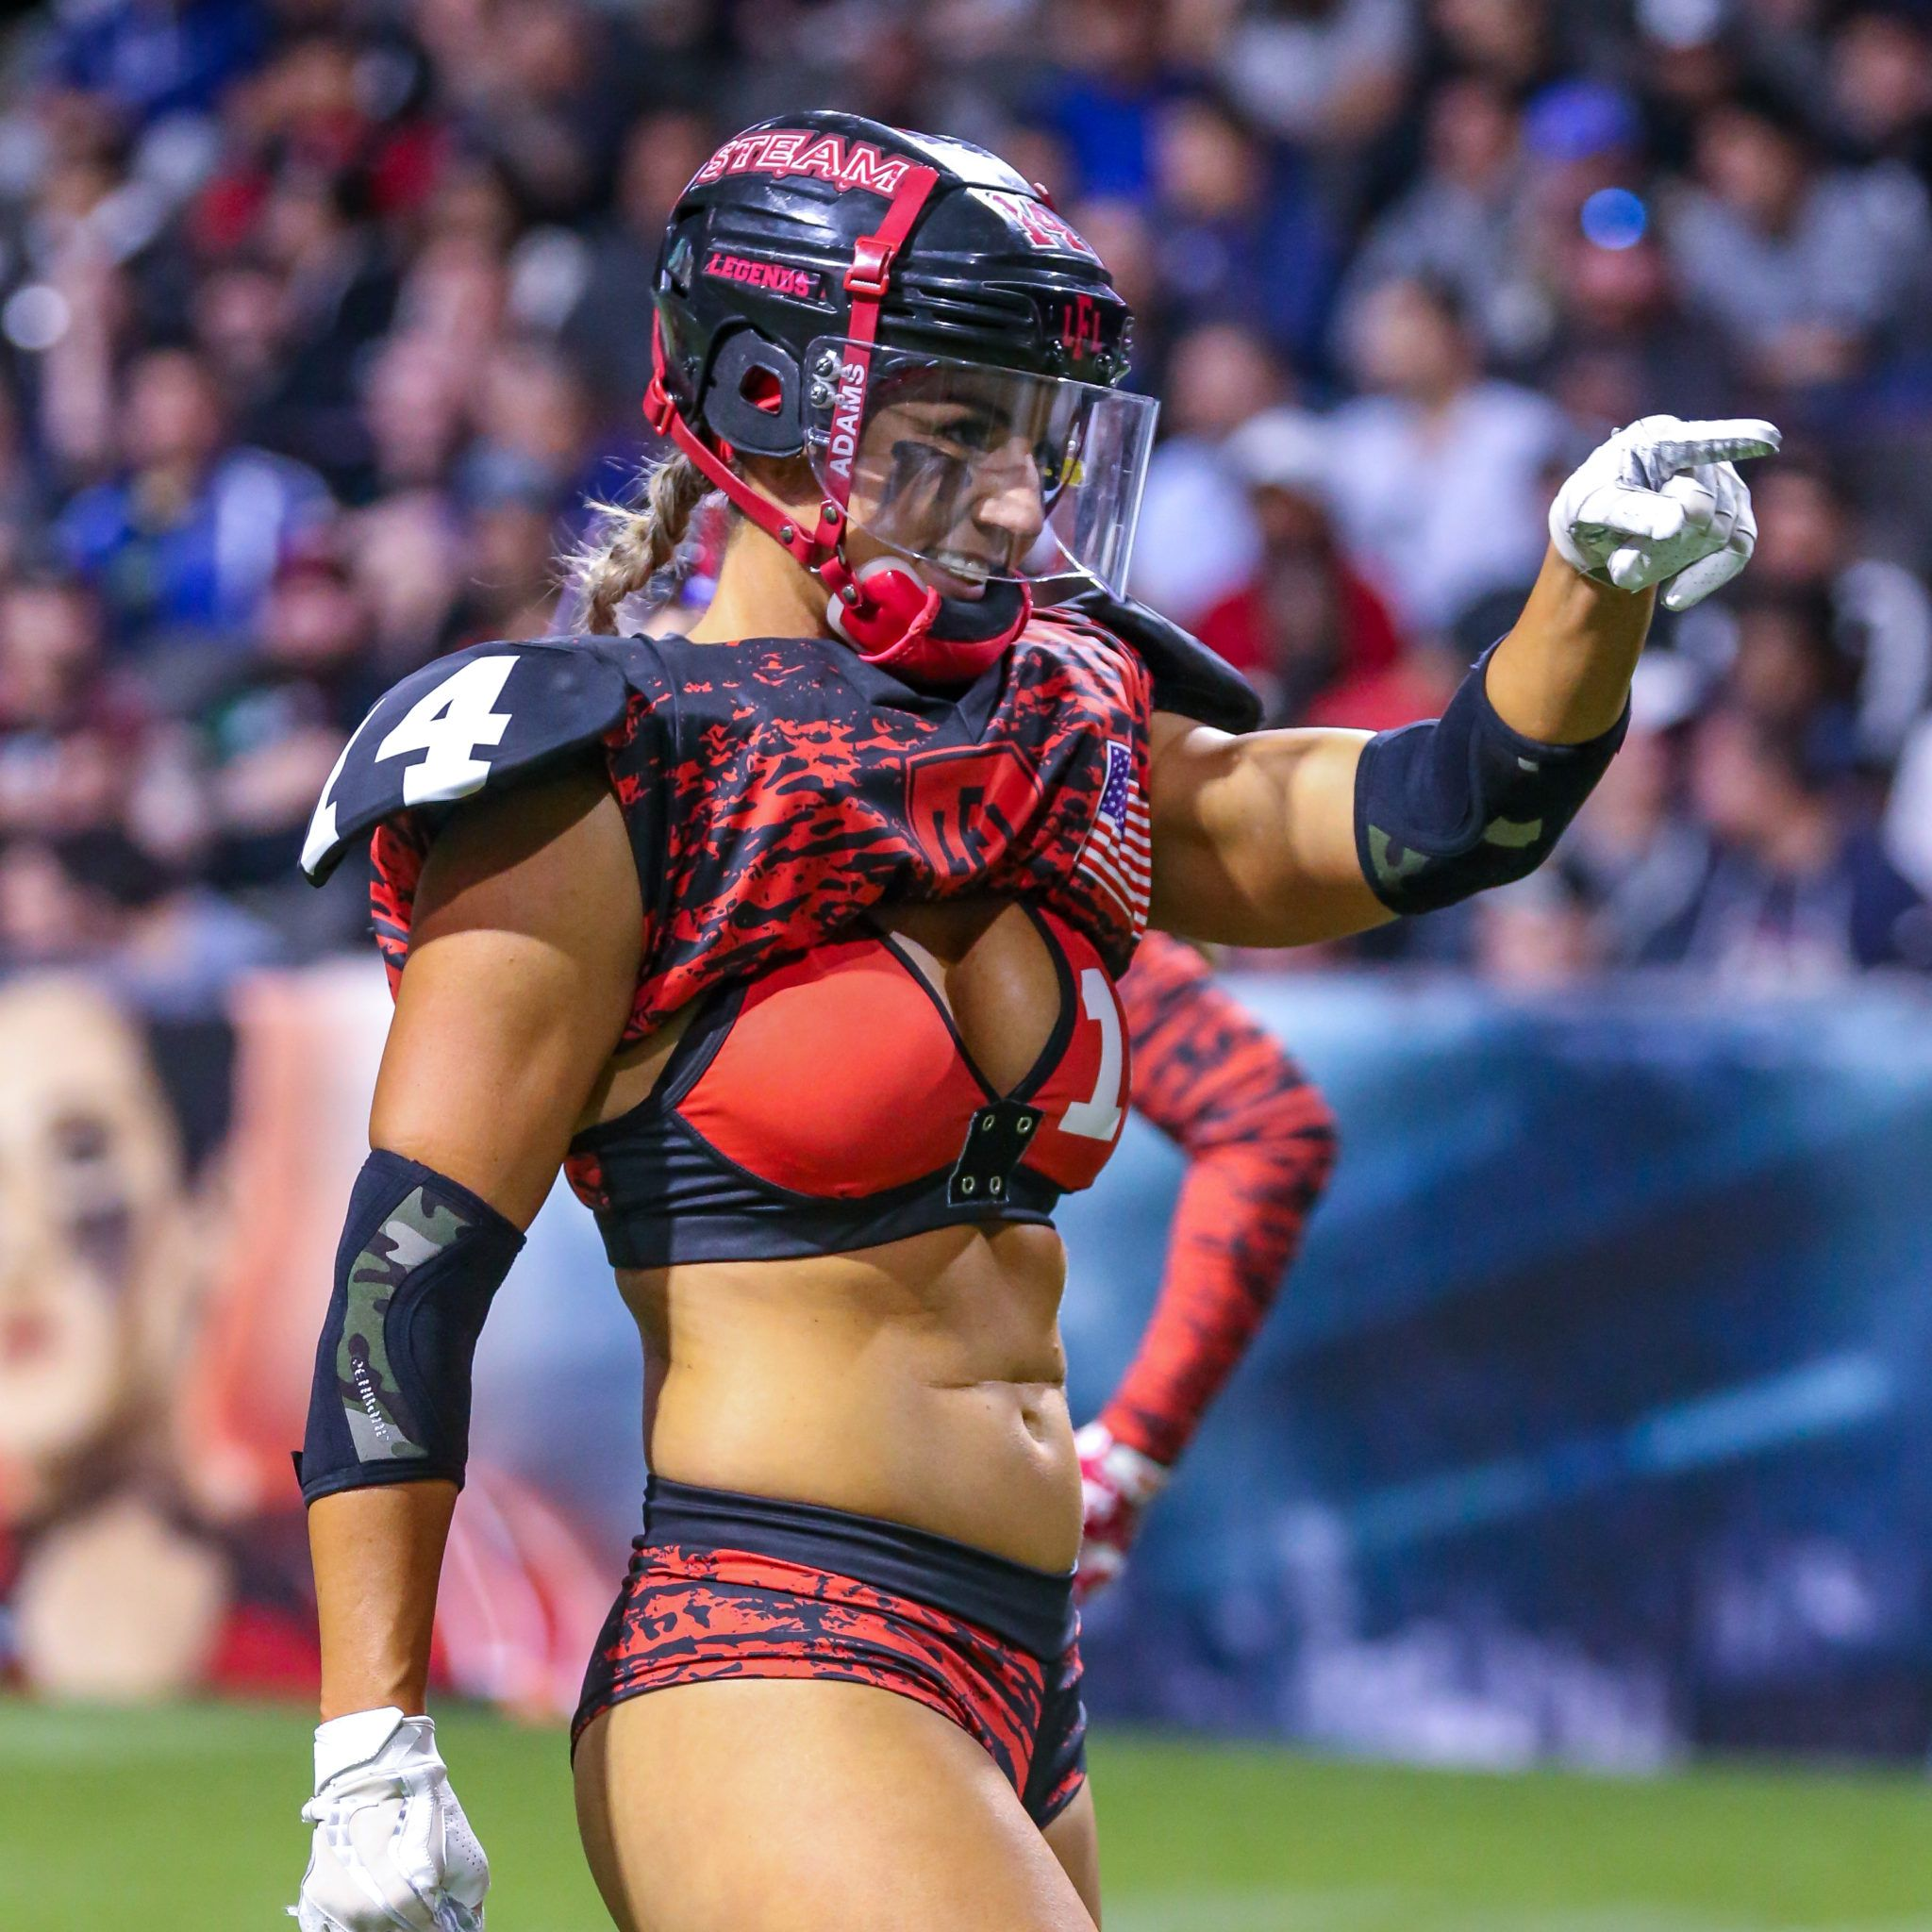 Pin On Legends Football League